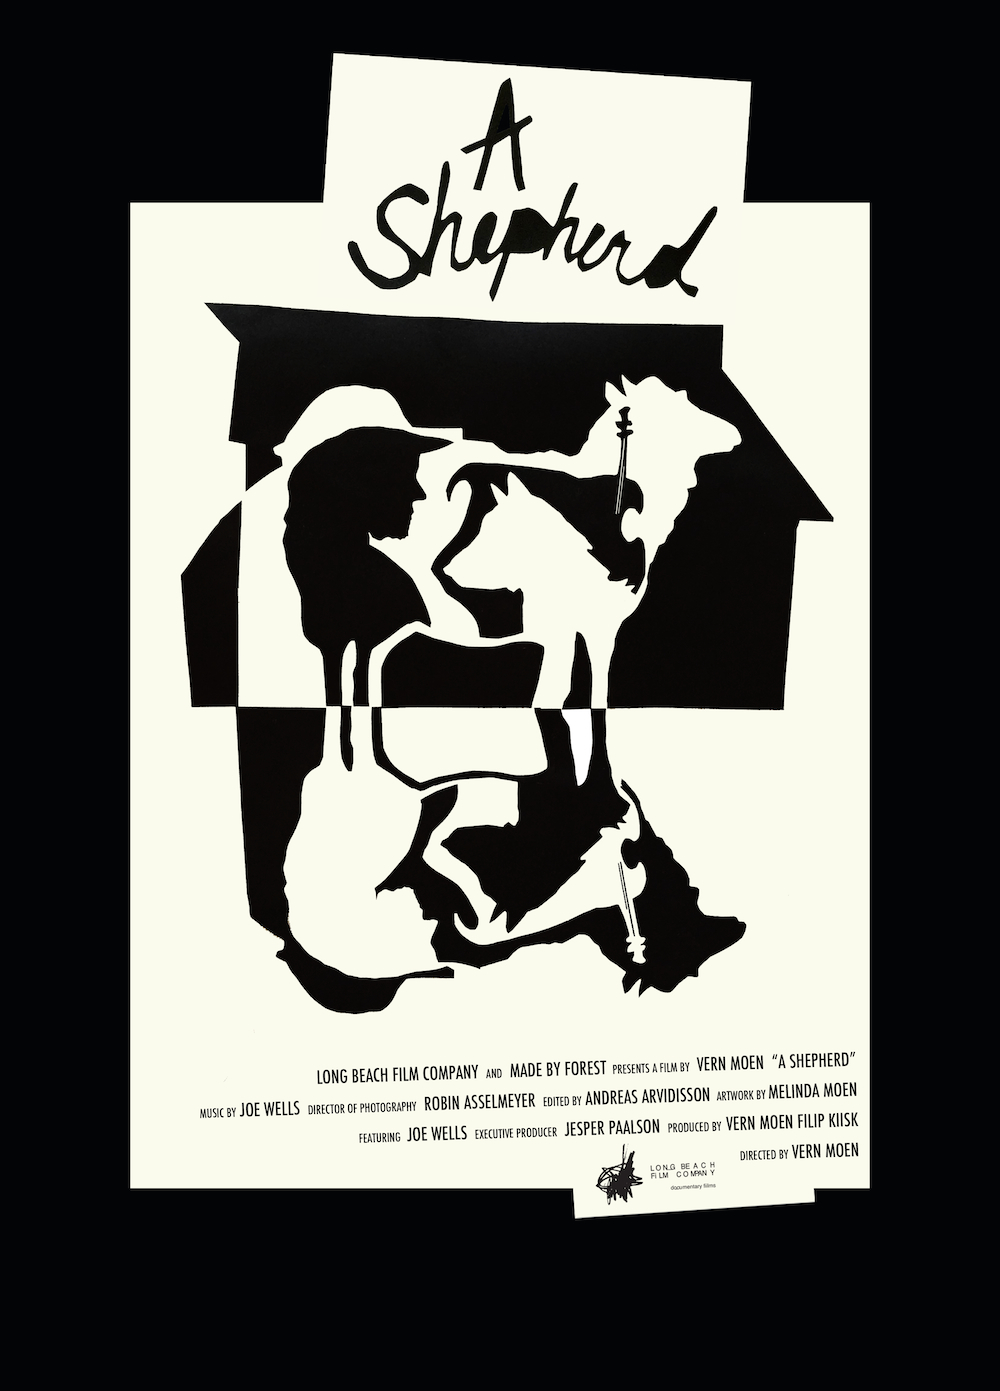 Official poster for A Shepherd.  Artwork by Melinda Moen.  Designed by Vern Moen.